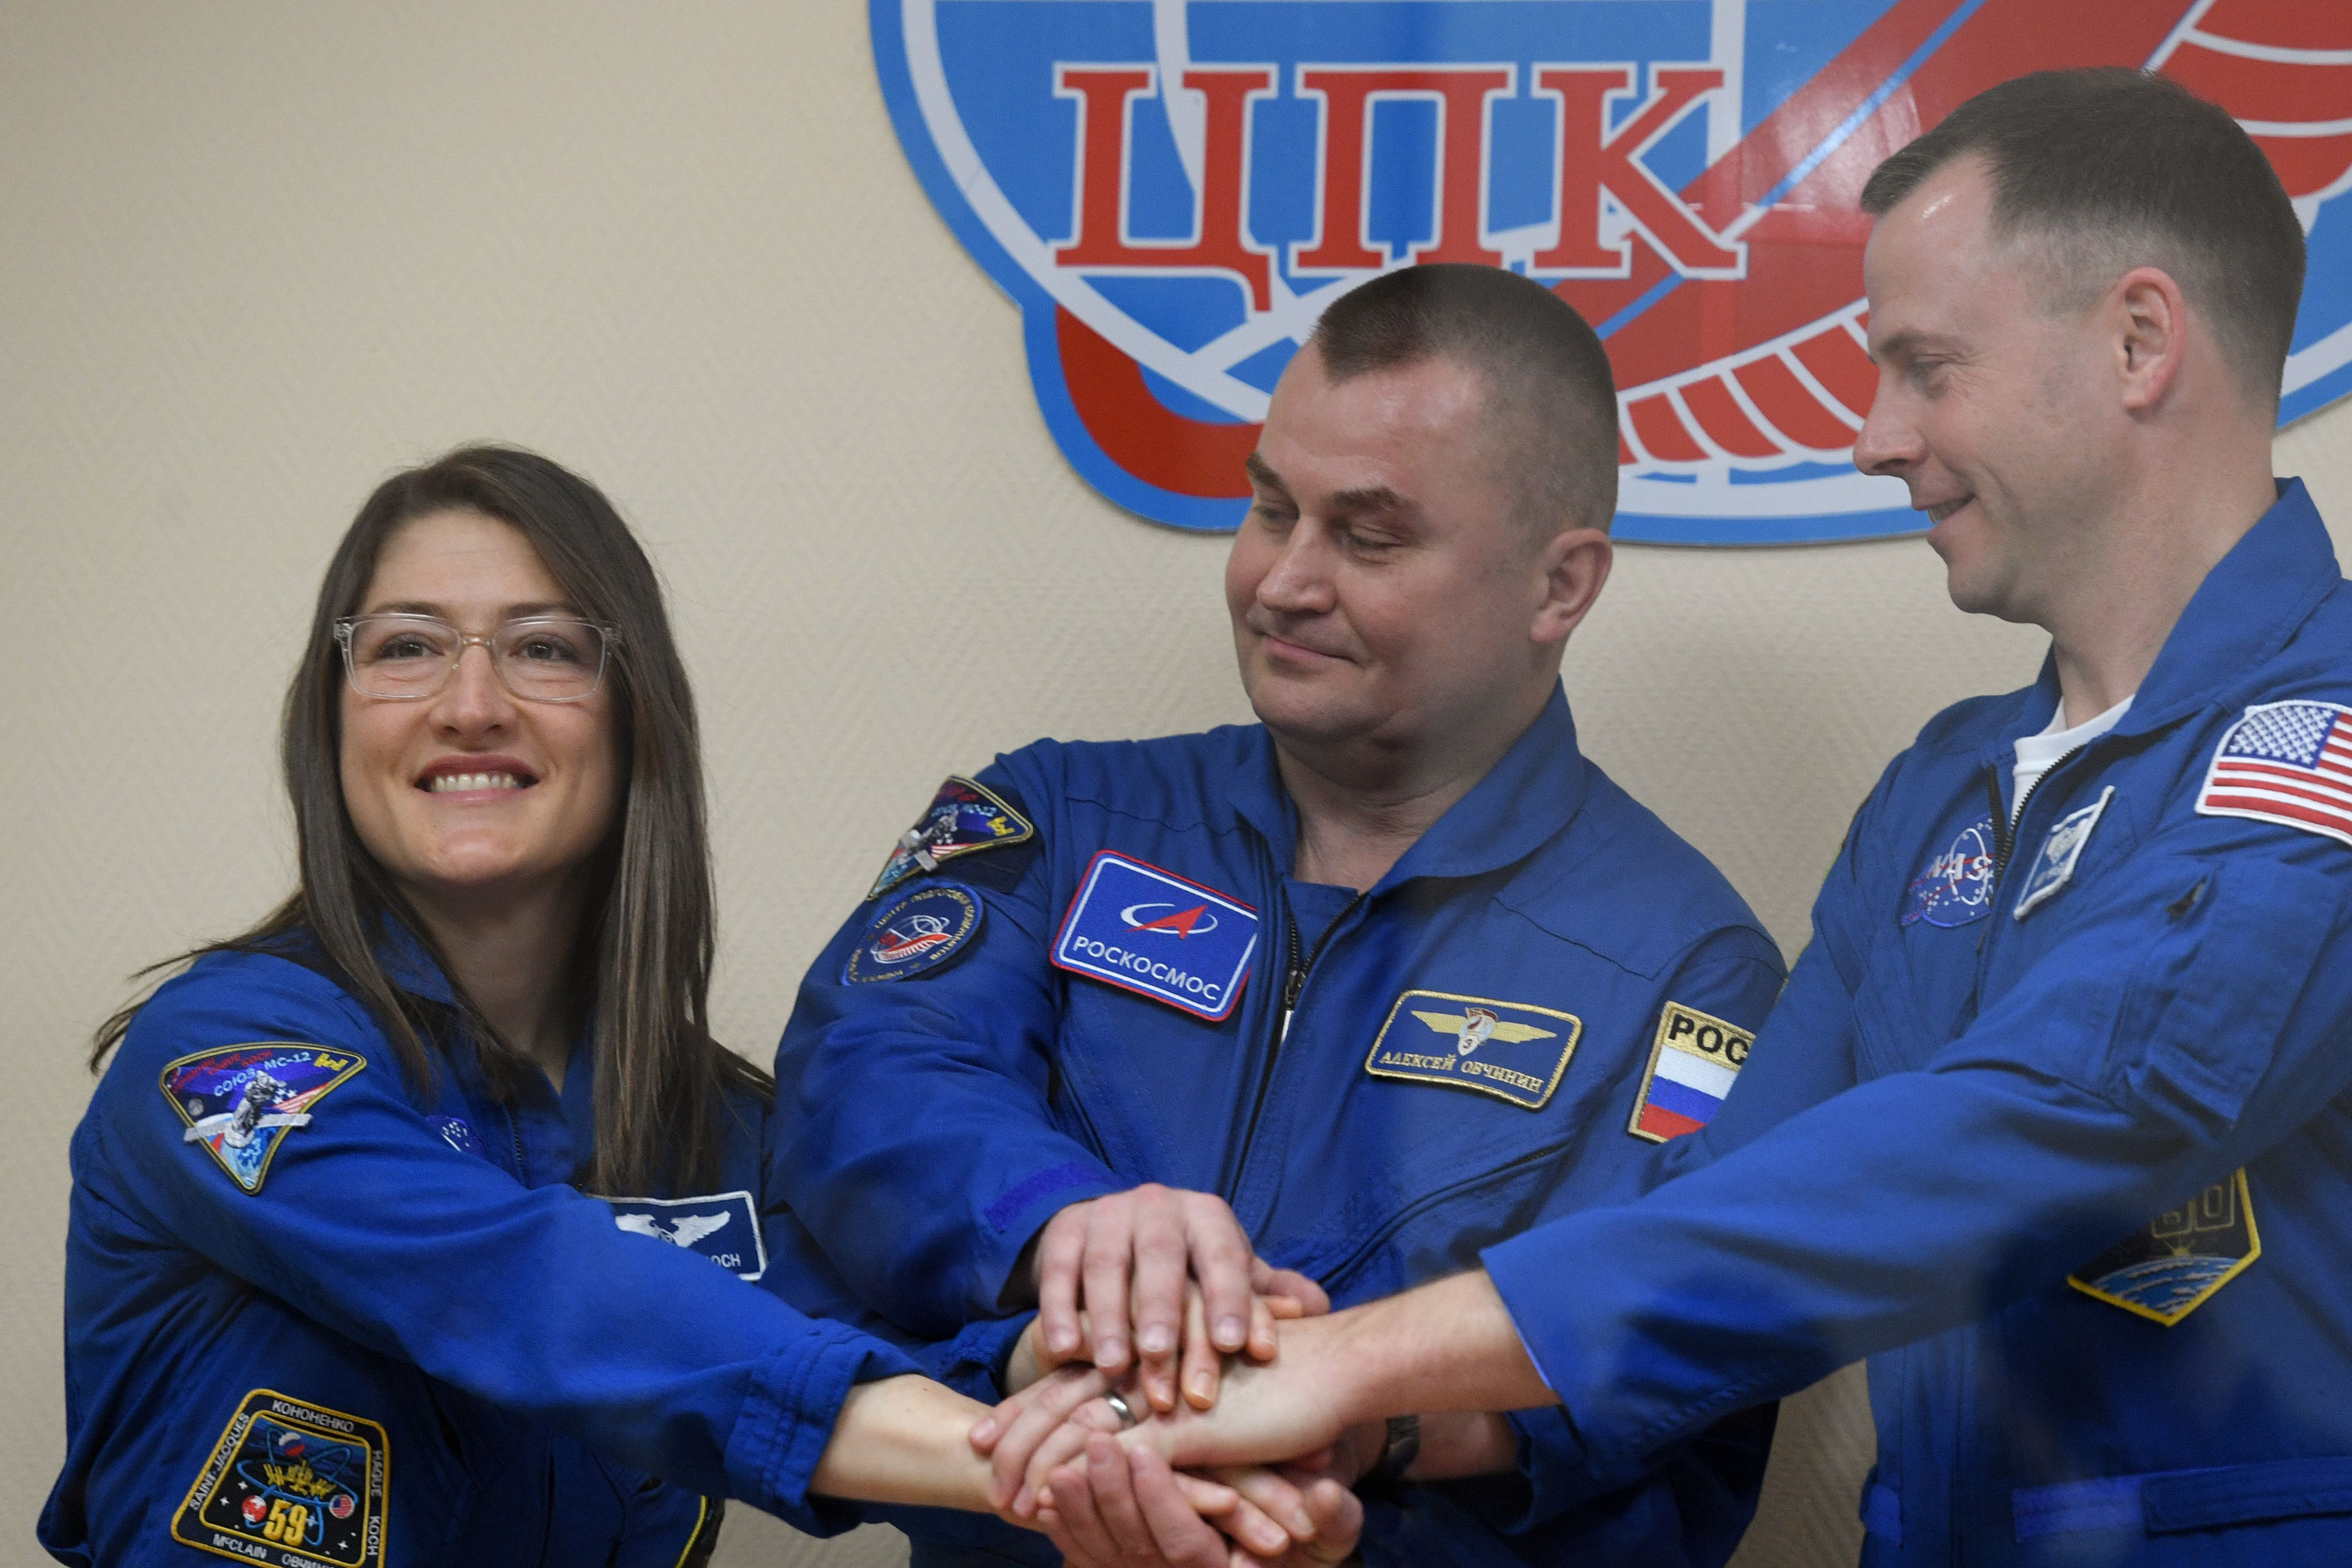 Members of the International Space Station (ISS) expedition 59/60, NASA astronauts Christina Hammock Koch (L) and Nick Hague (R) and Russian cosmonaut Alexey Ovchinin, pose at the end of a press conference at the Russian-leased Baikonur cosmodrome in Kazakhstan on March 13, 2019. (KIRILL KUDRYAVTSEV/AFP/Getty Images)